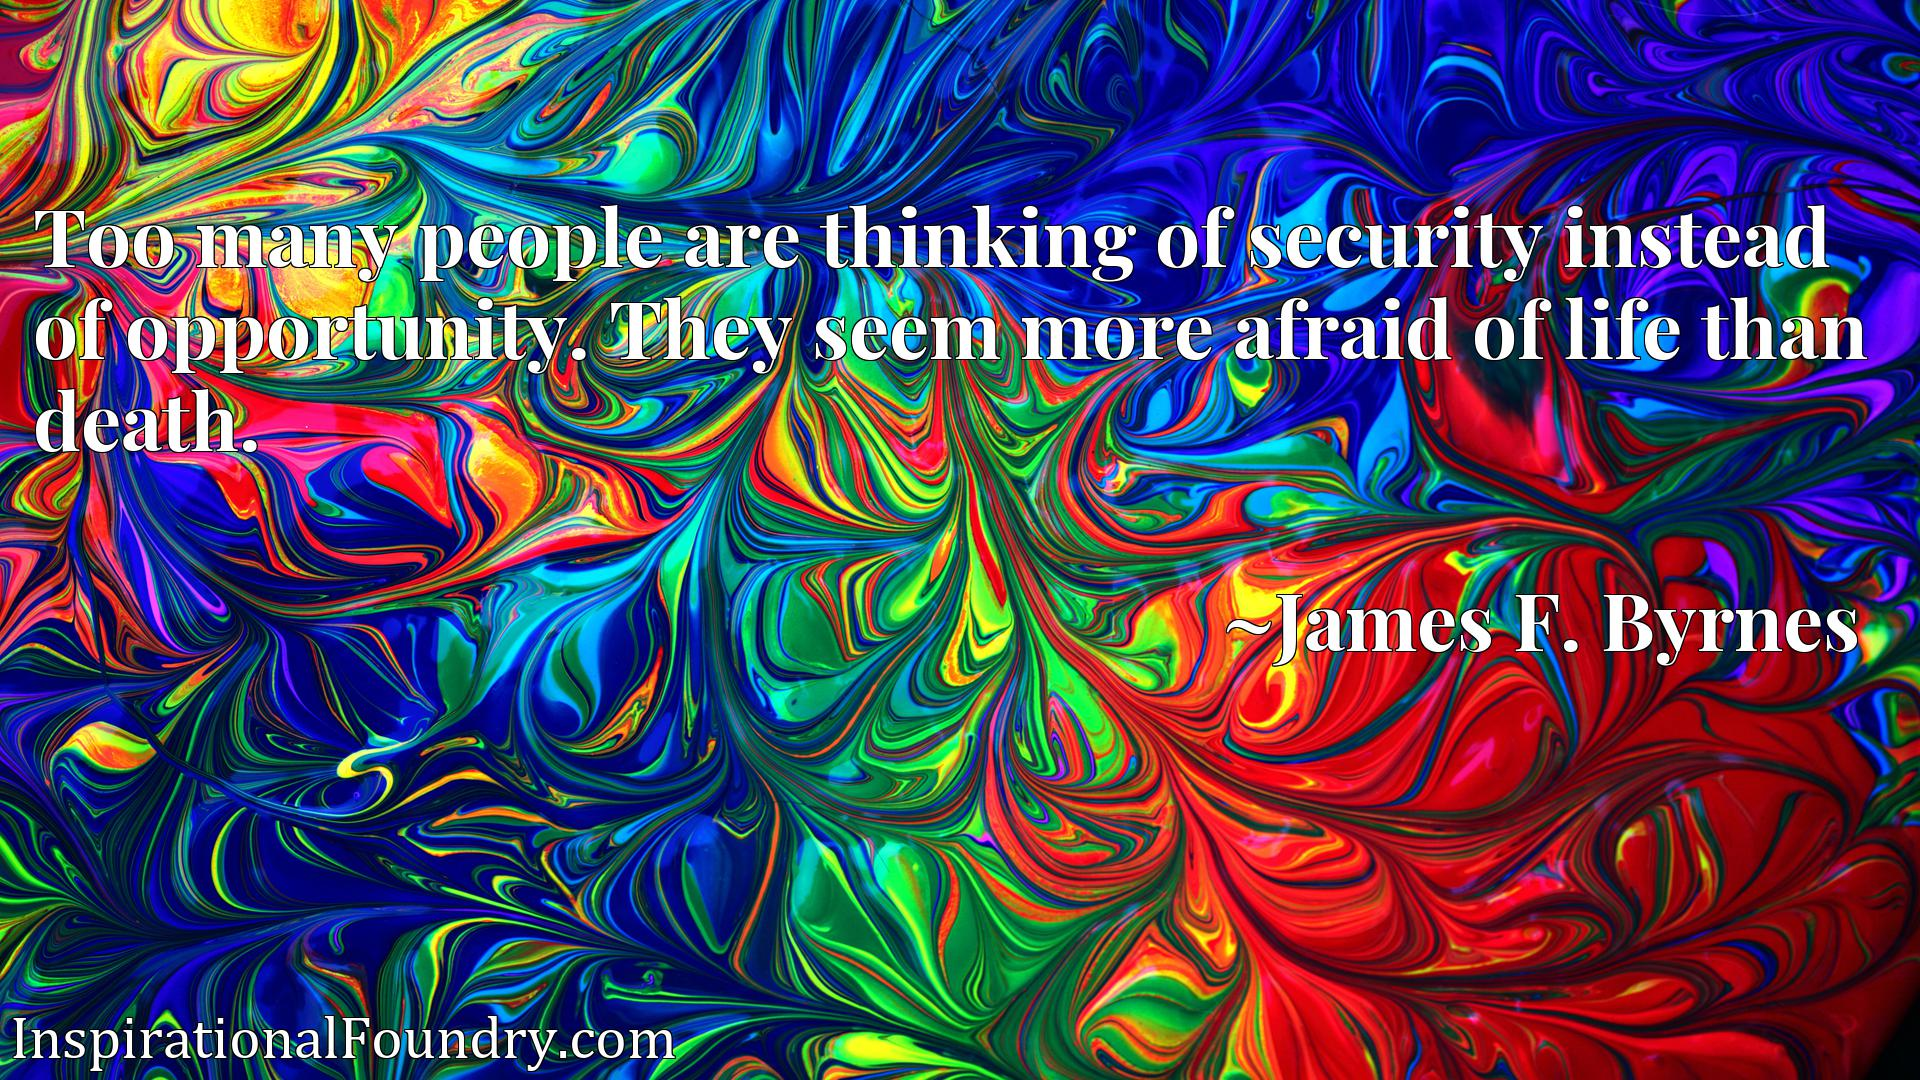 Too many people are thinking of security instead of opportunity. They seem more afraid of life than death.